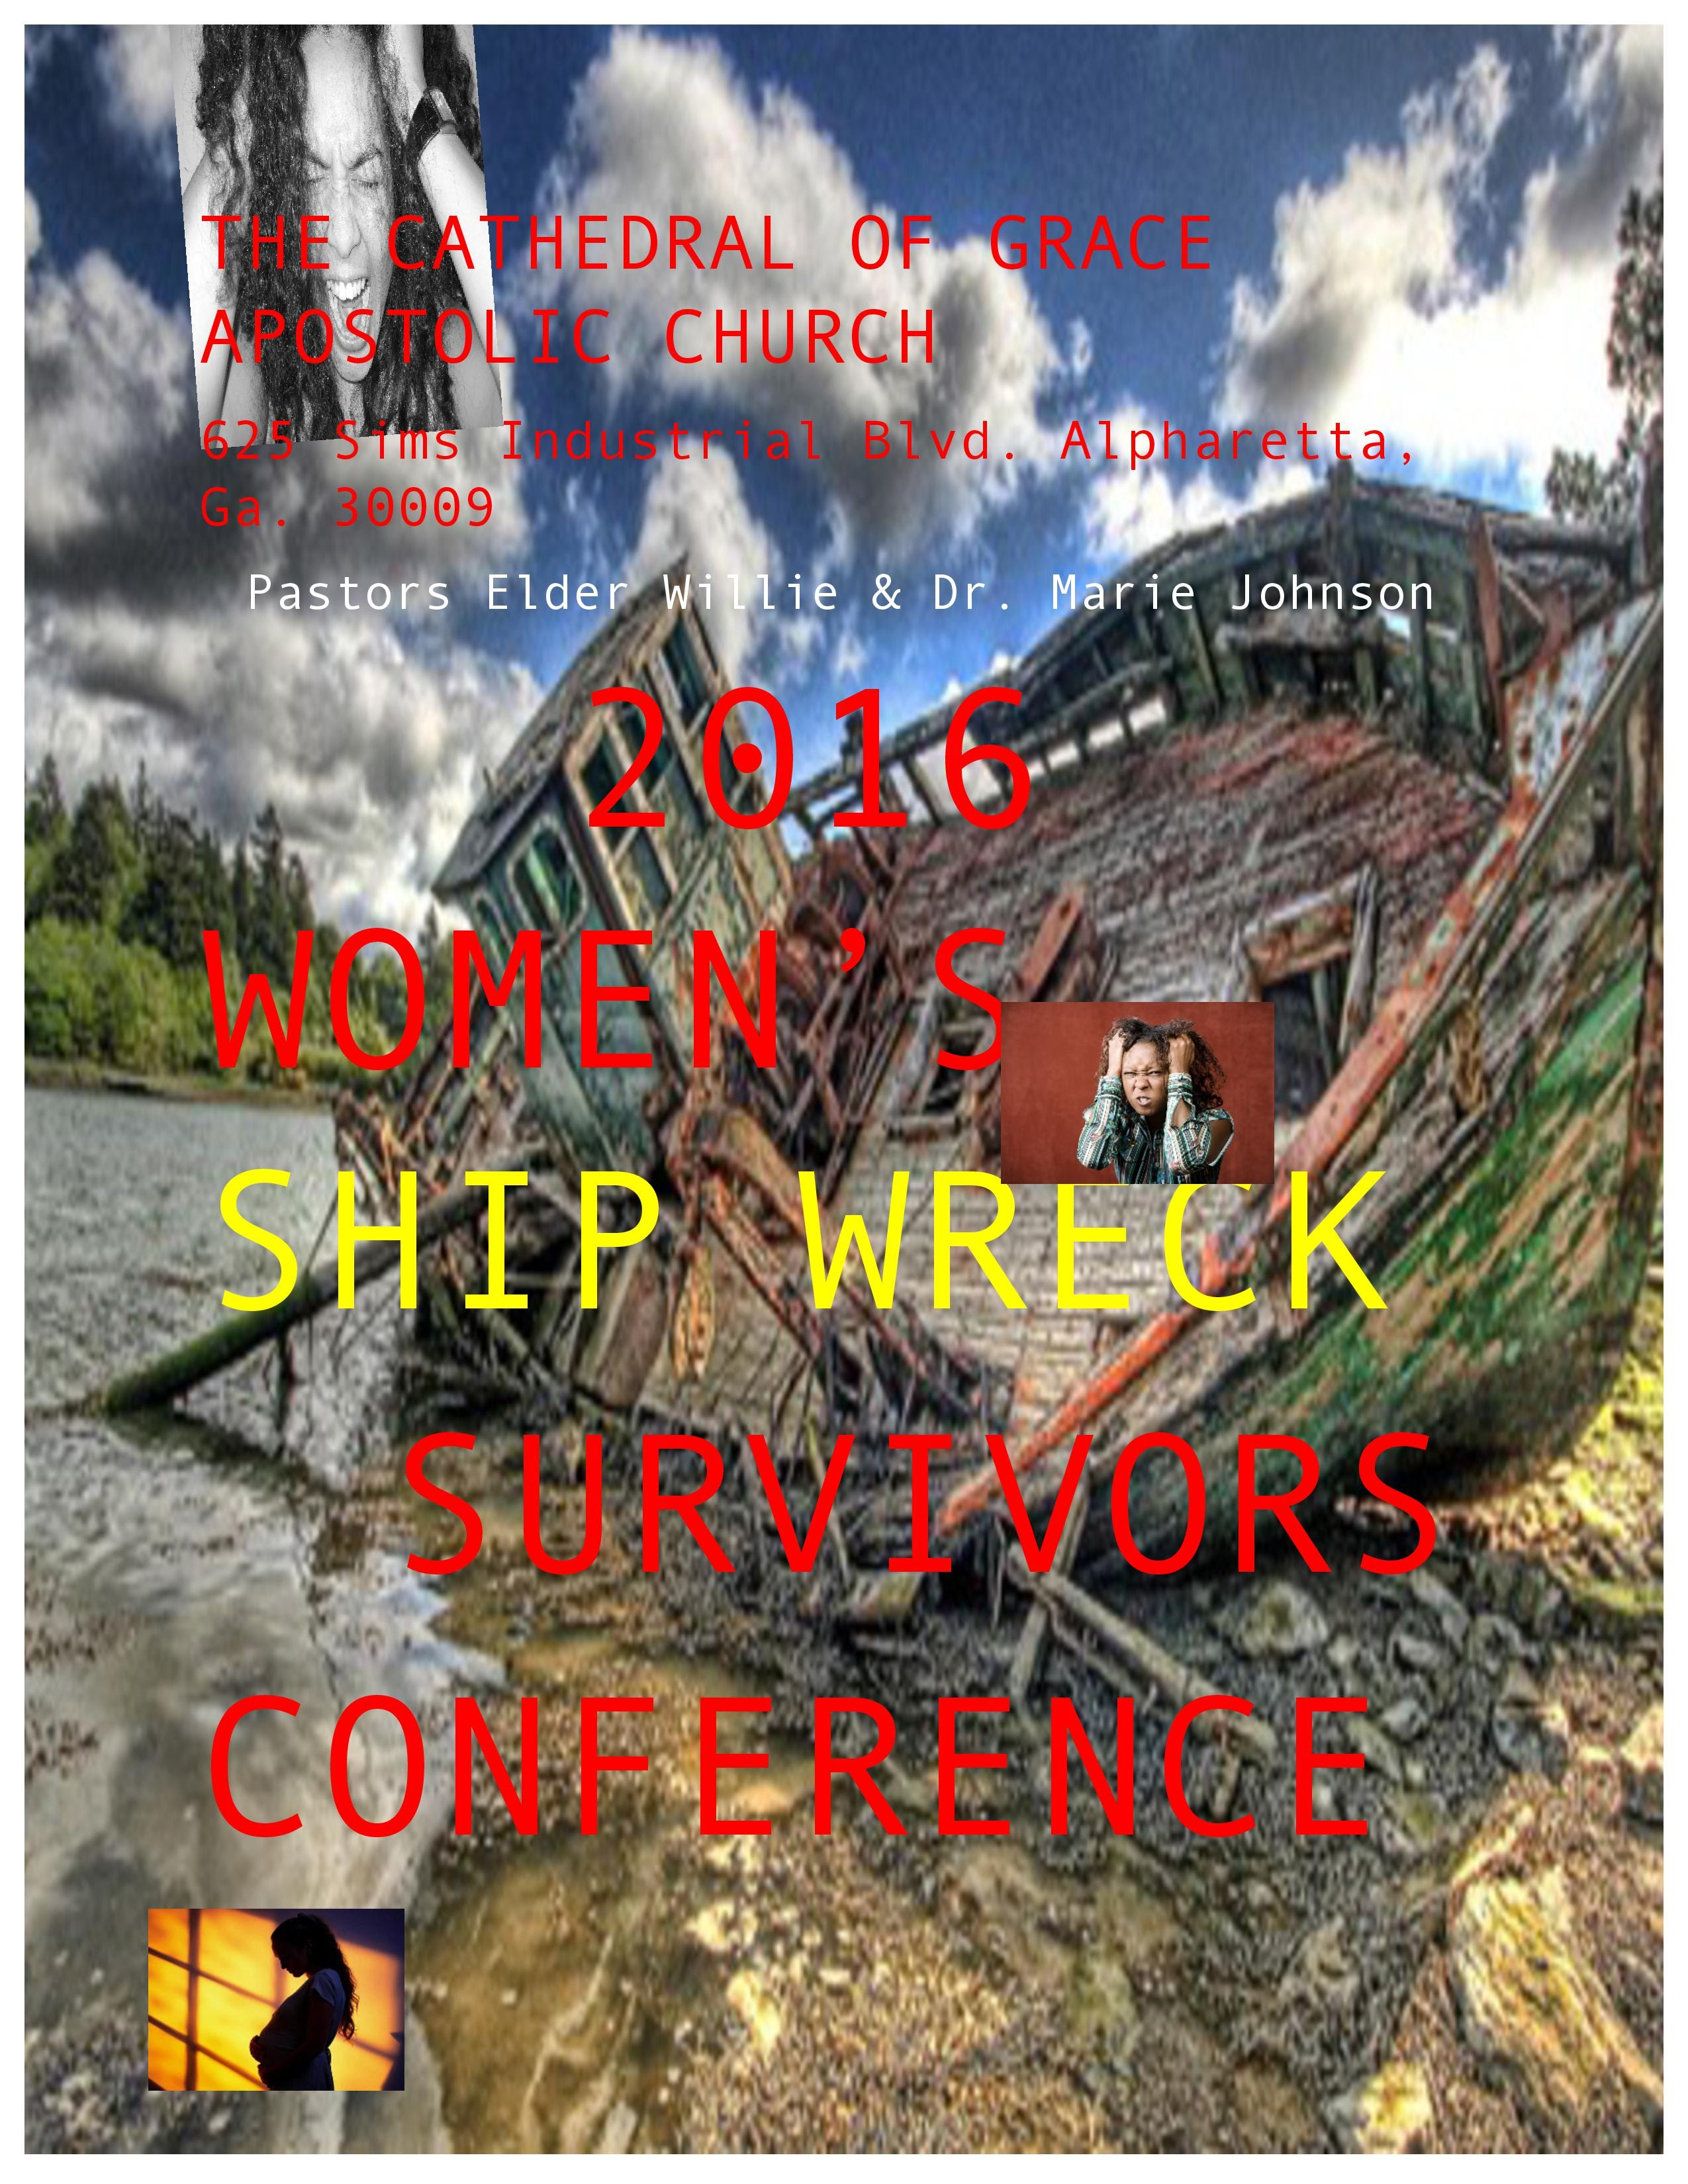 https://sites.google.com/a/cgraceapostolic.com/cgrace/what-s-happening/shipwrecksurvivorsconference-october2016/Page1%202.jpg